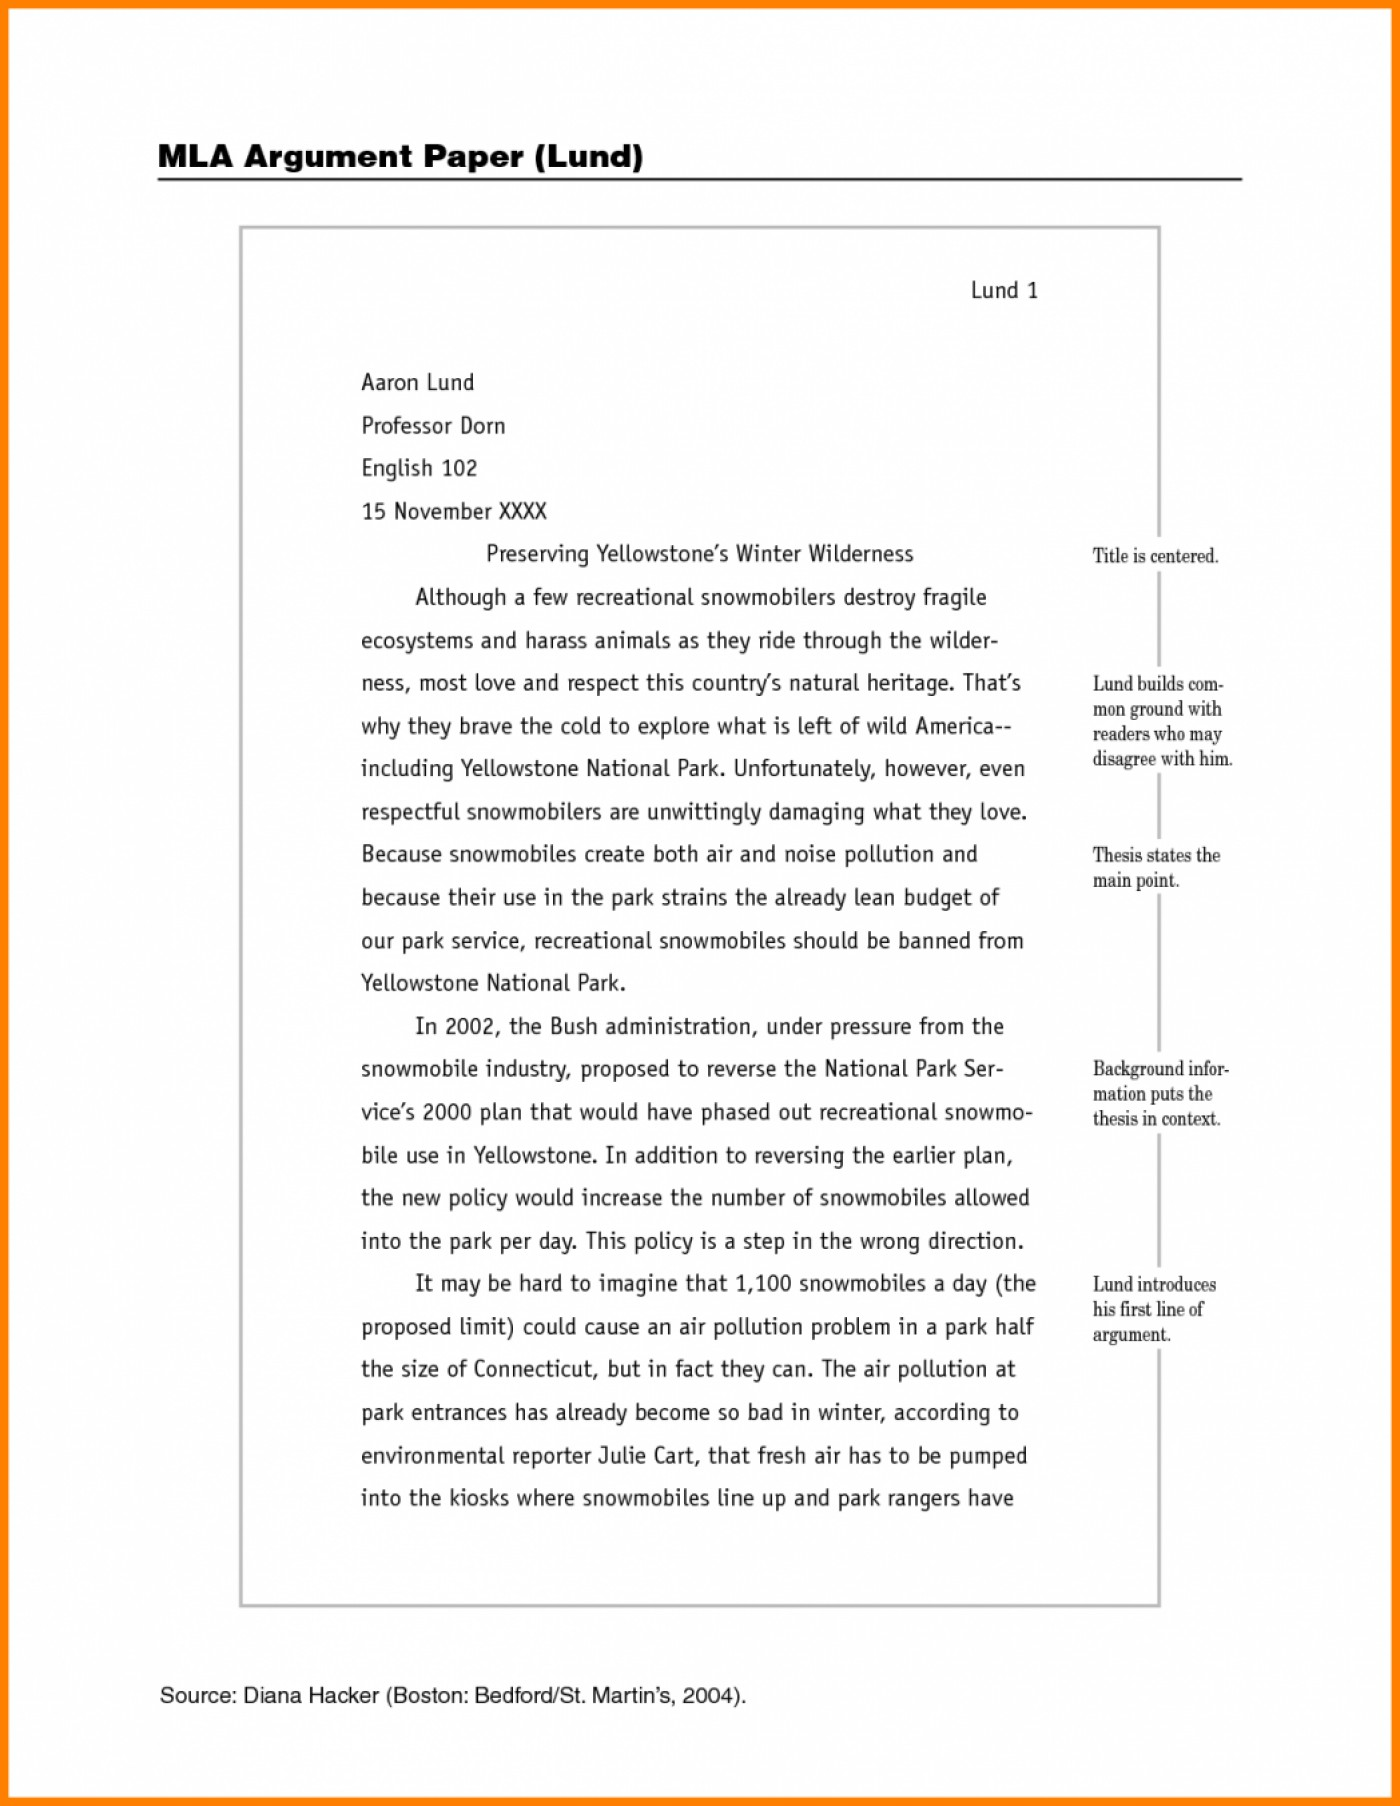 009 Research Paper Asa Format Example How To Write Sample Ledger For Title Page Inspirational Apa Style Summary Singular 1400